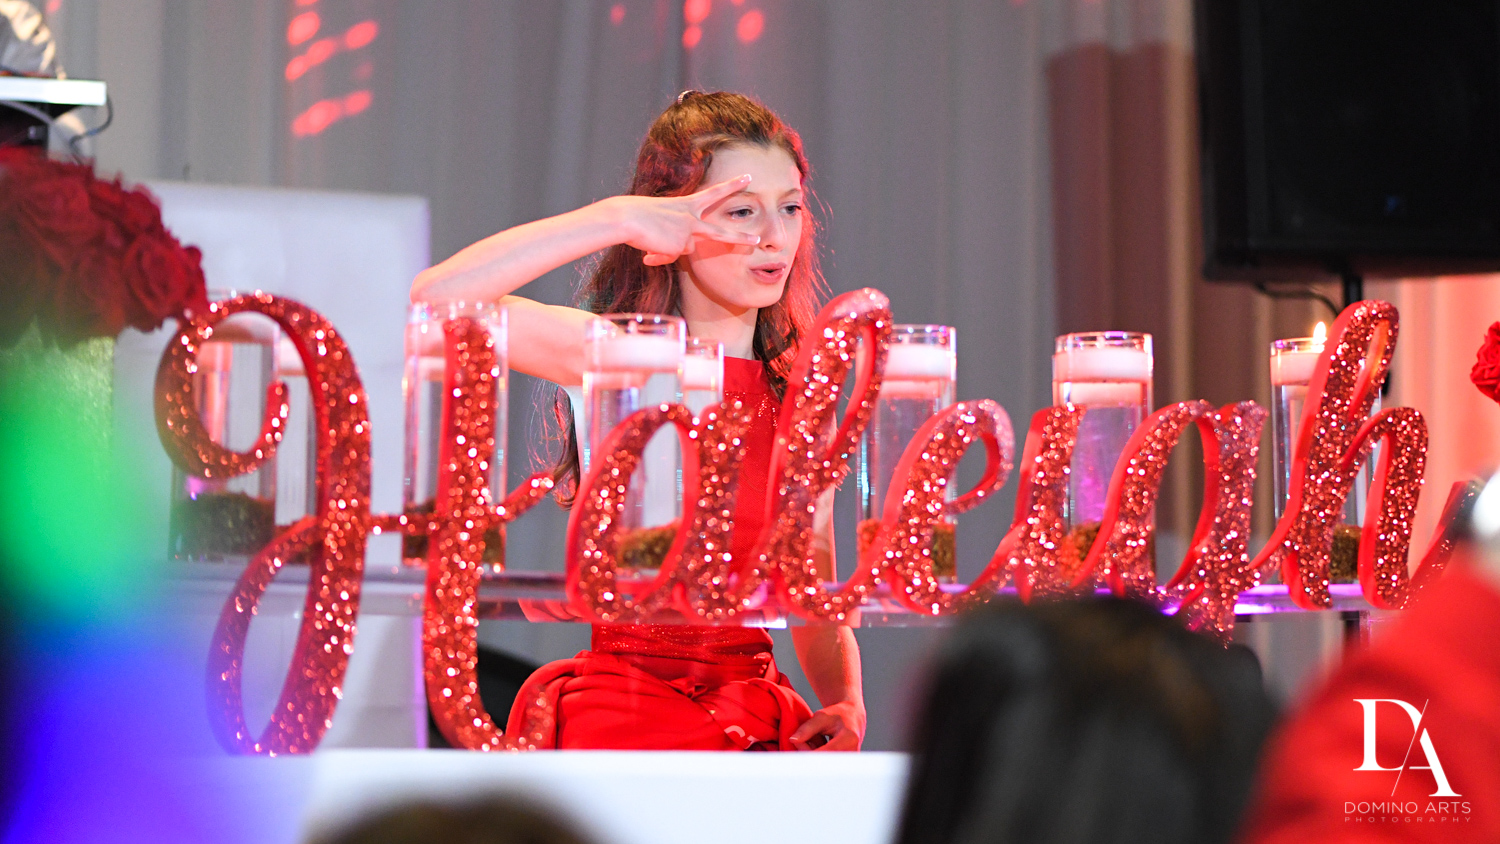 Fun party pictures at Broadway Theme Bat Mitzvah Photography at Miami Beach Resort